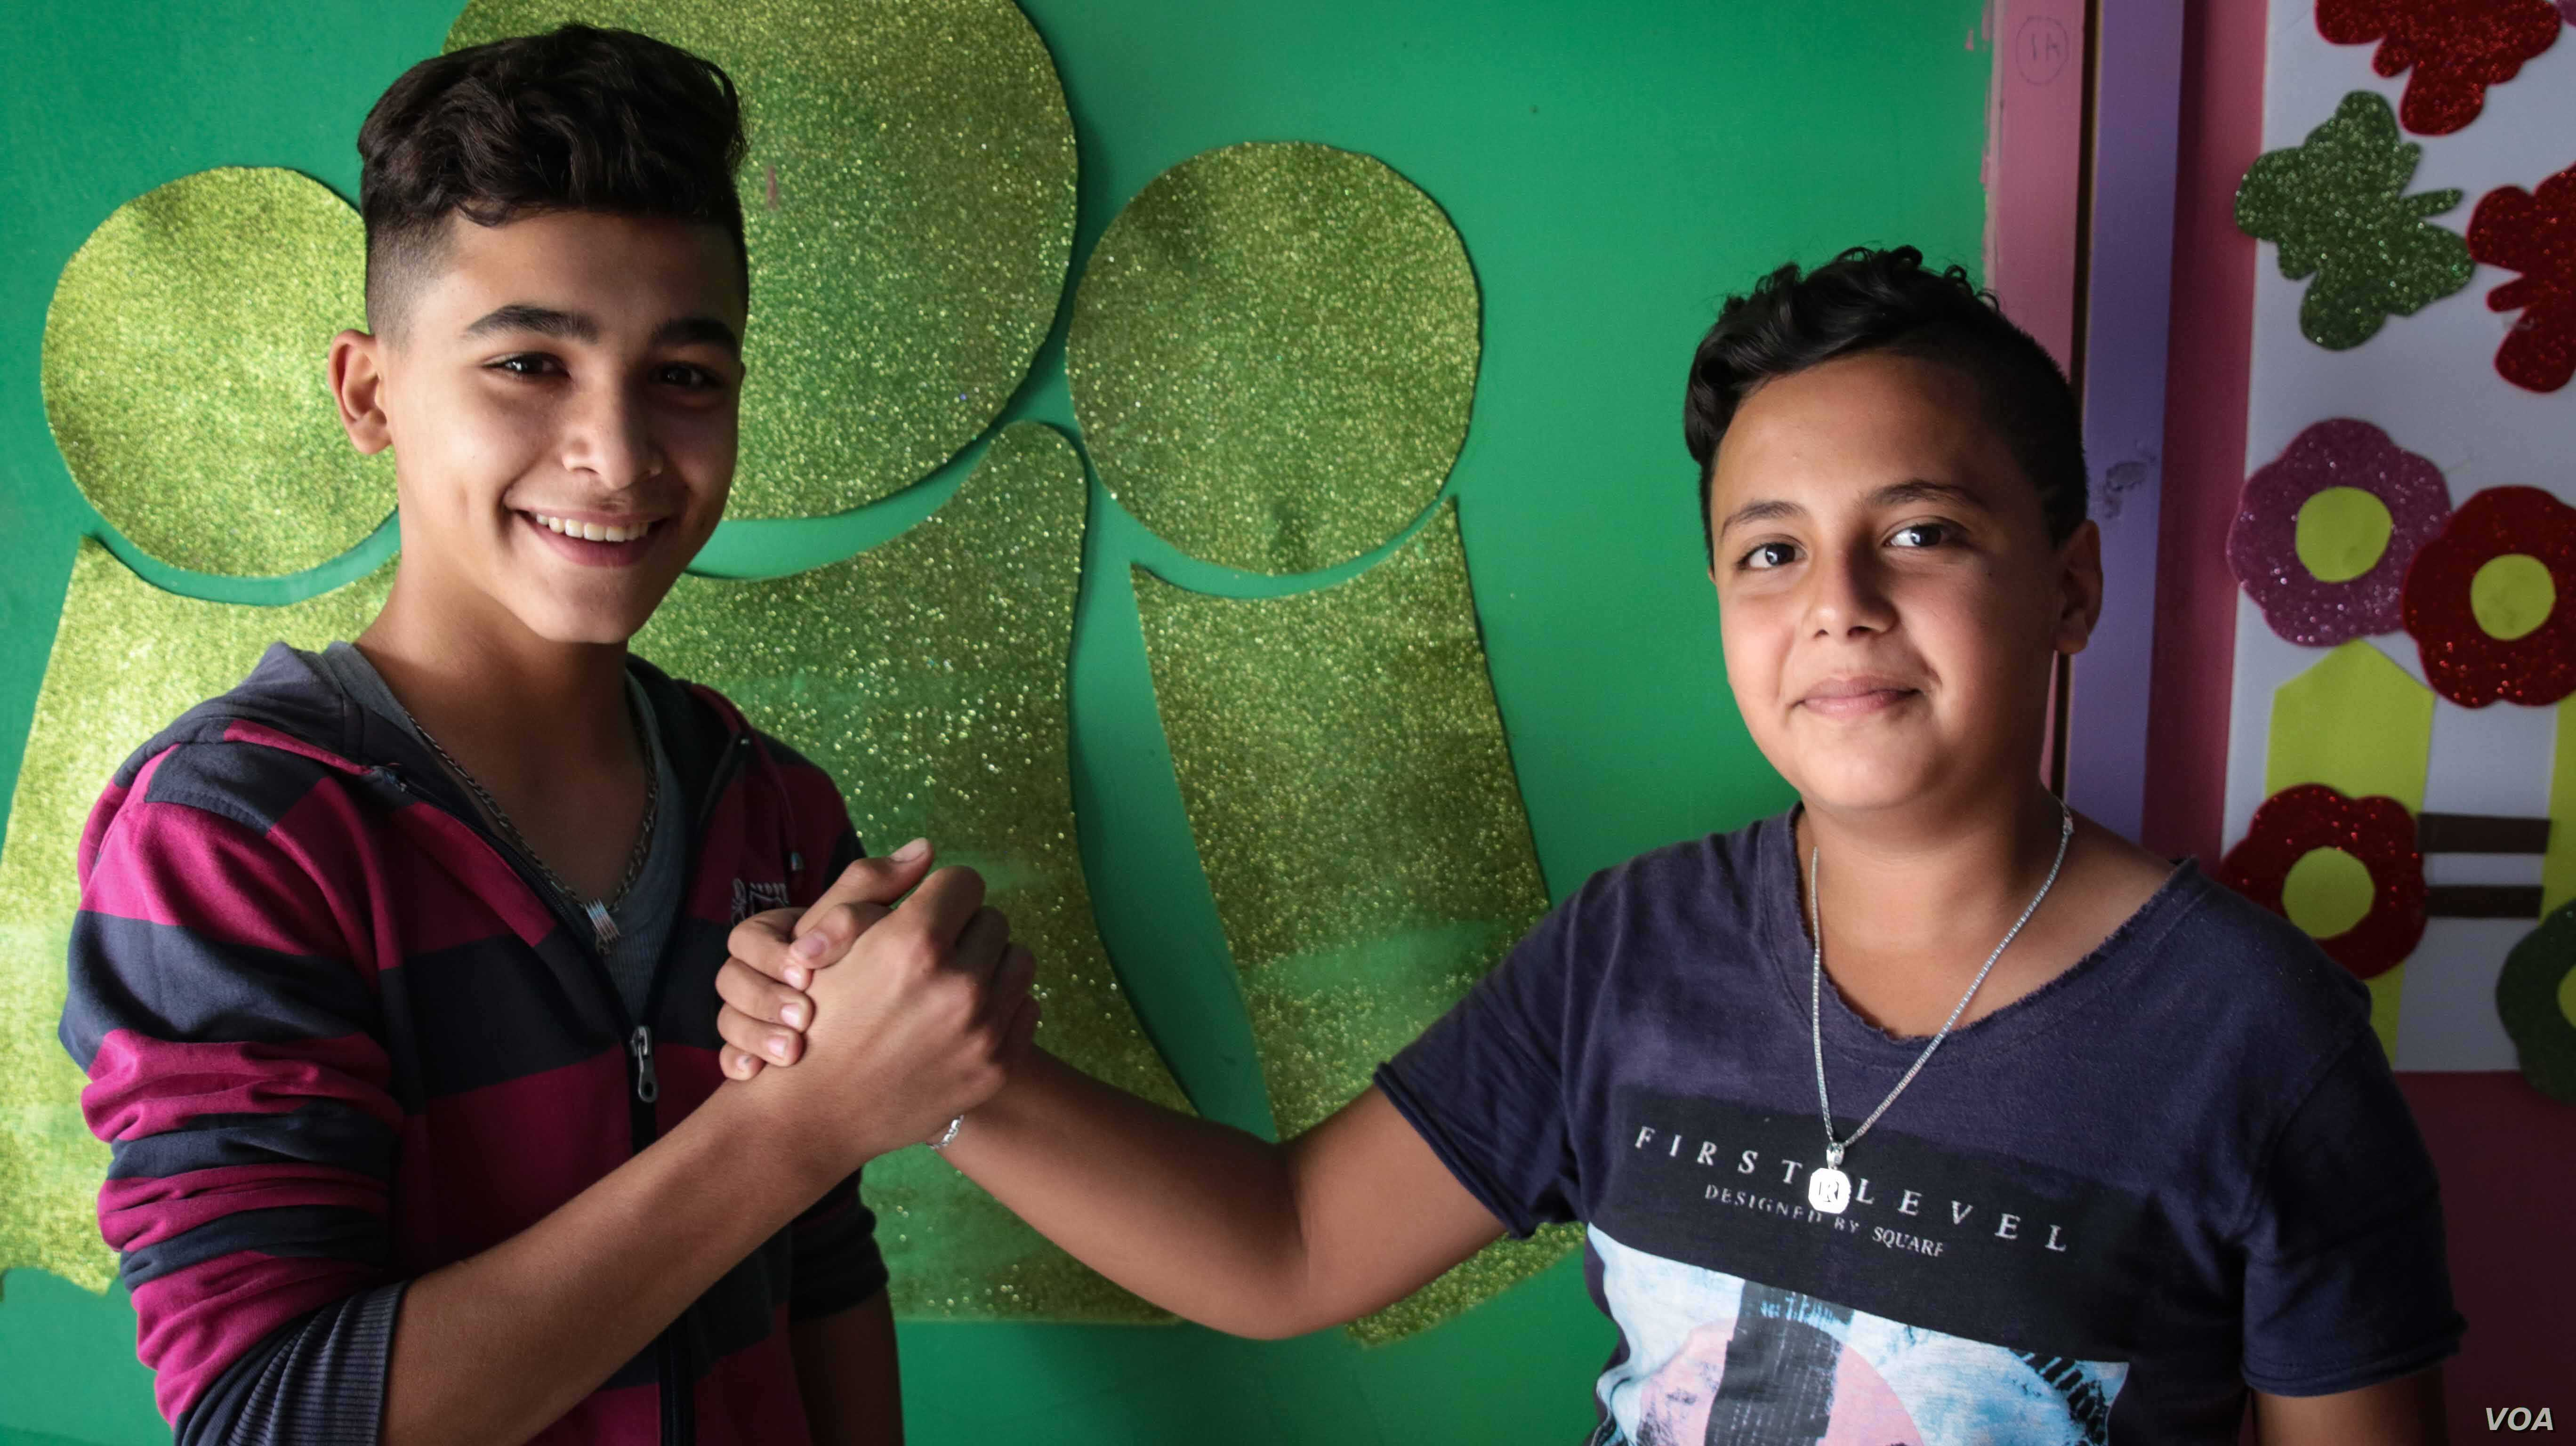 Jibril Latach, left, 16, is Lebanese and met his friend Raed, 14, a Syrian refugee, at the Beyond Association center where the choir practices.